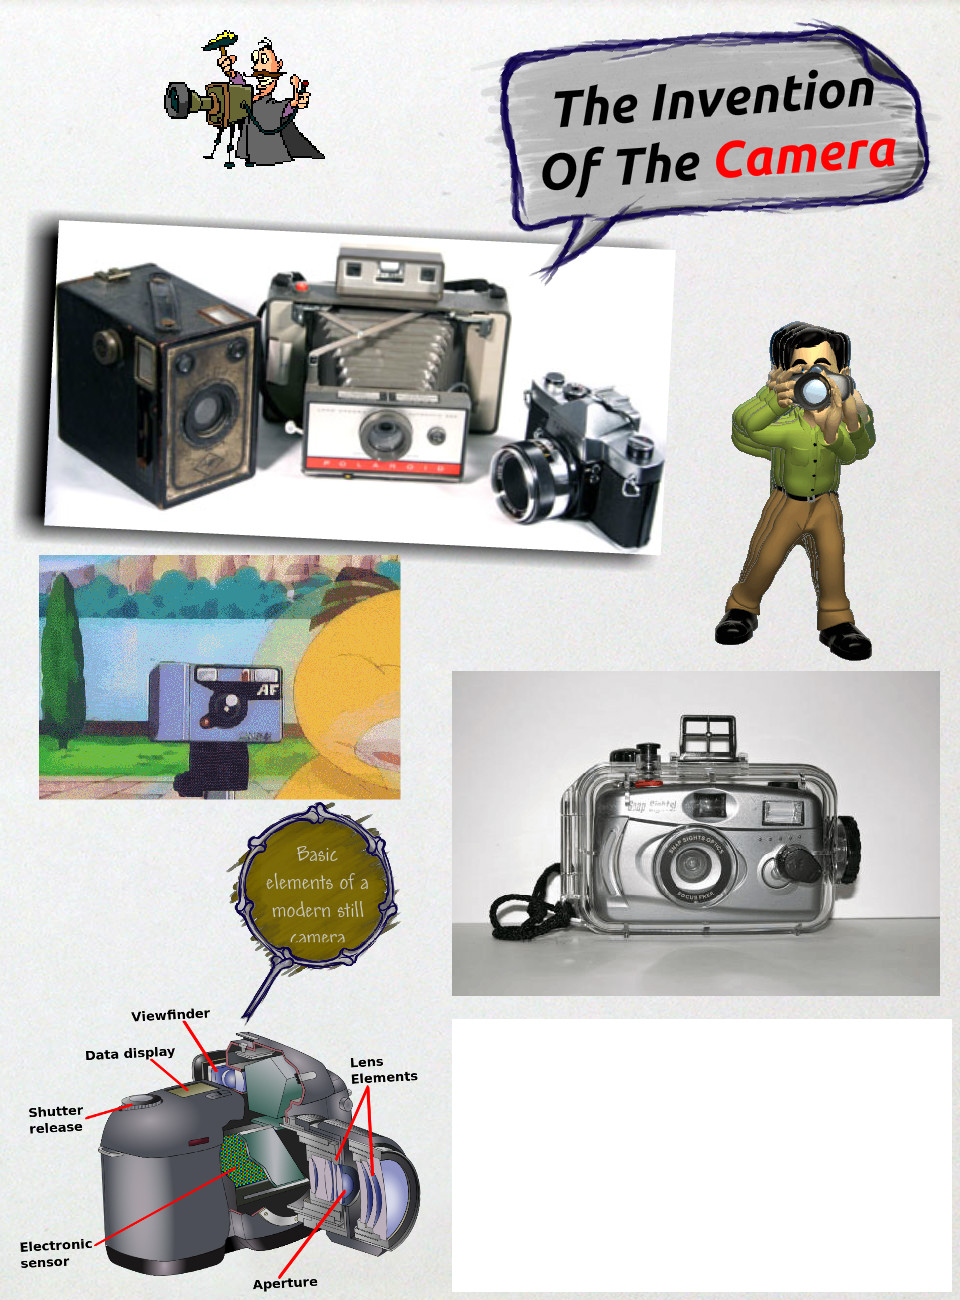 TASK 3&4: PROJECT Discovery of The Camera